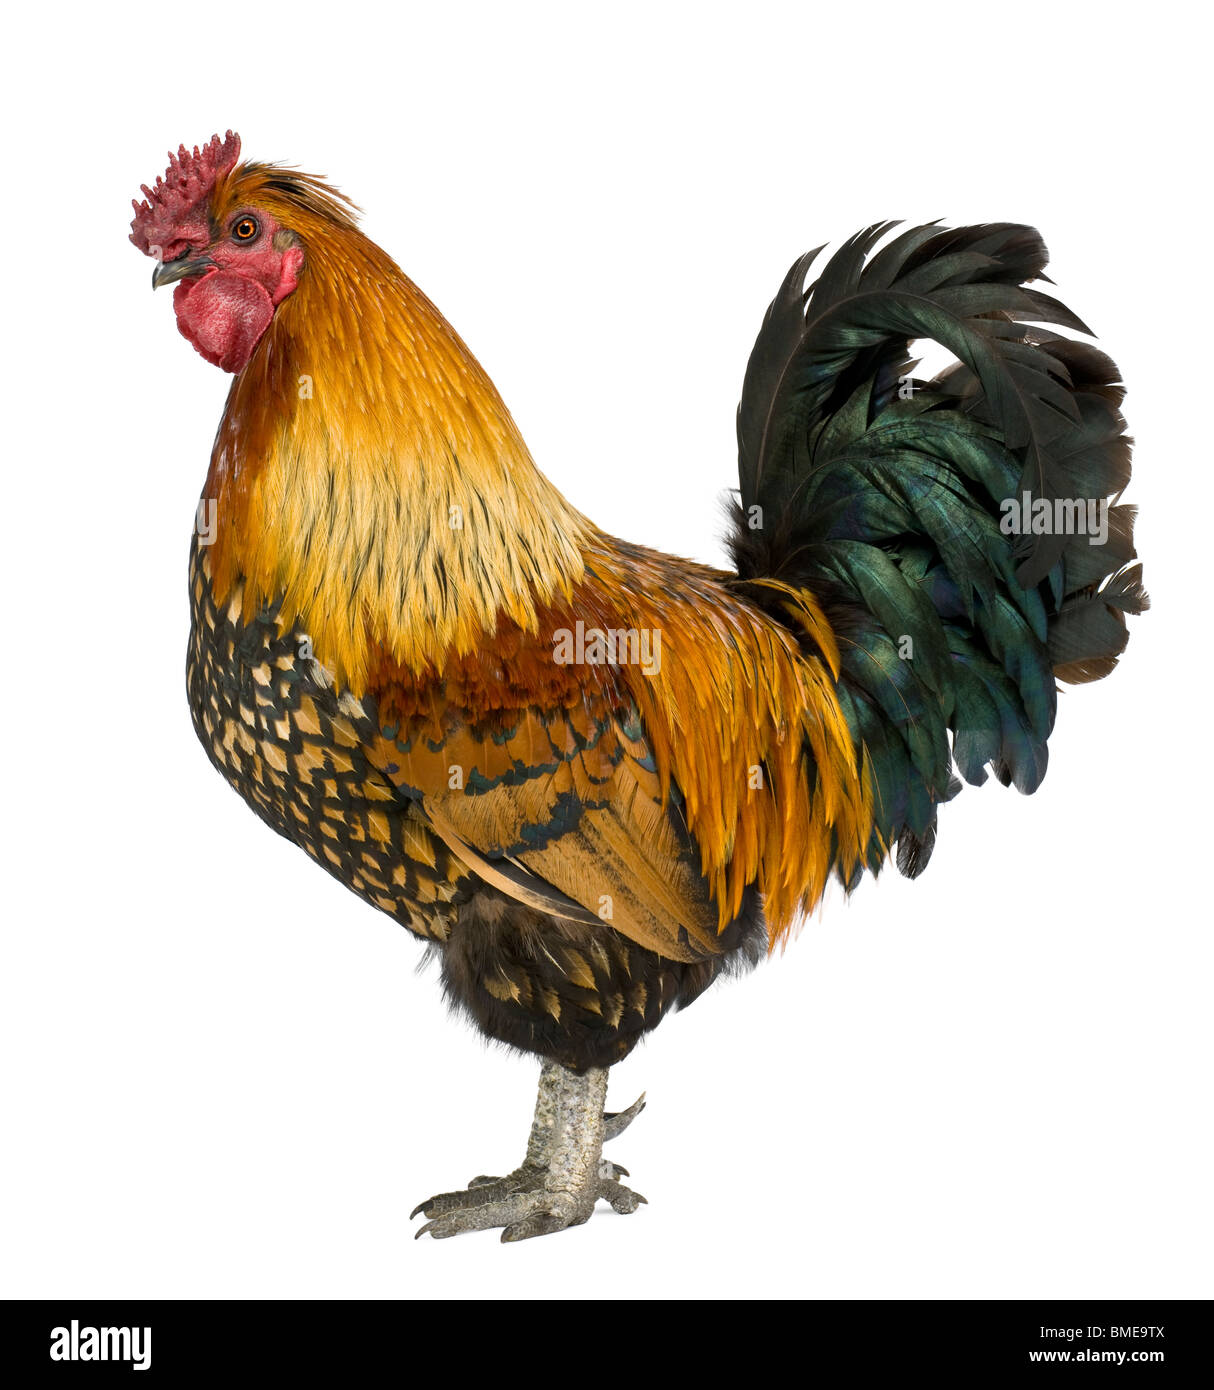 Gallic rooster, 5 years old, standing in front of white background - Stock Image